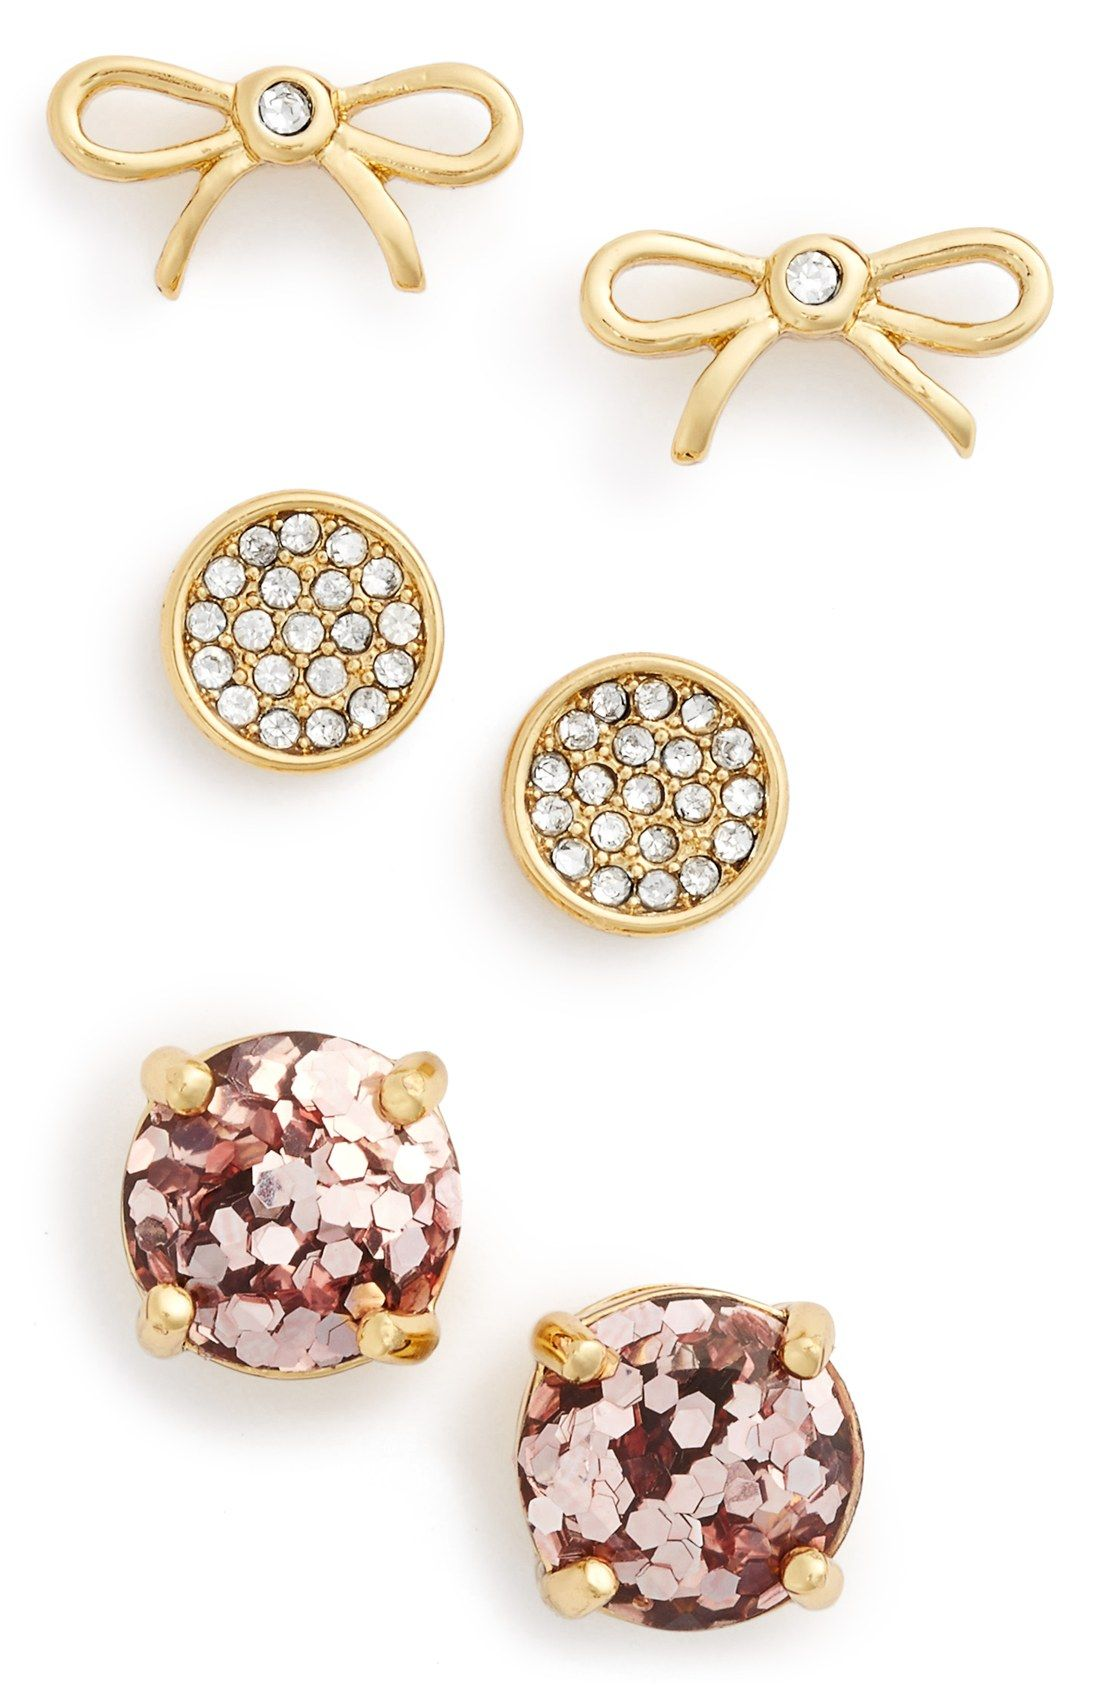 rstyle her stud gifts perfectpalette images kate presents sparkly glitter earrings twinkle best christmas pinterest on me for spade